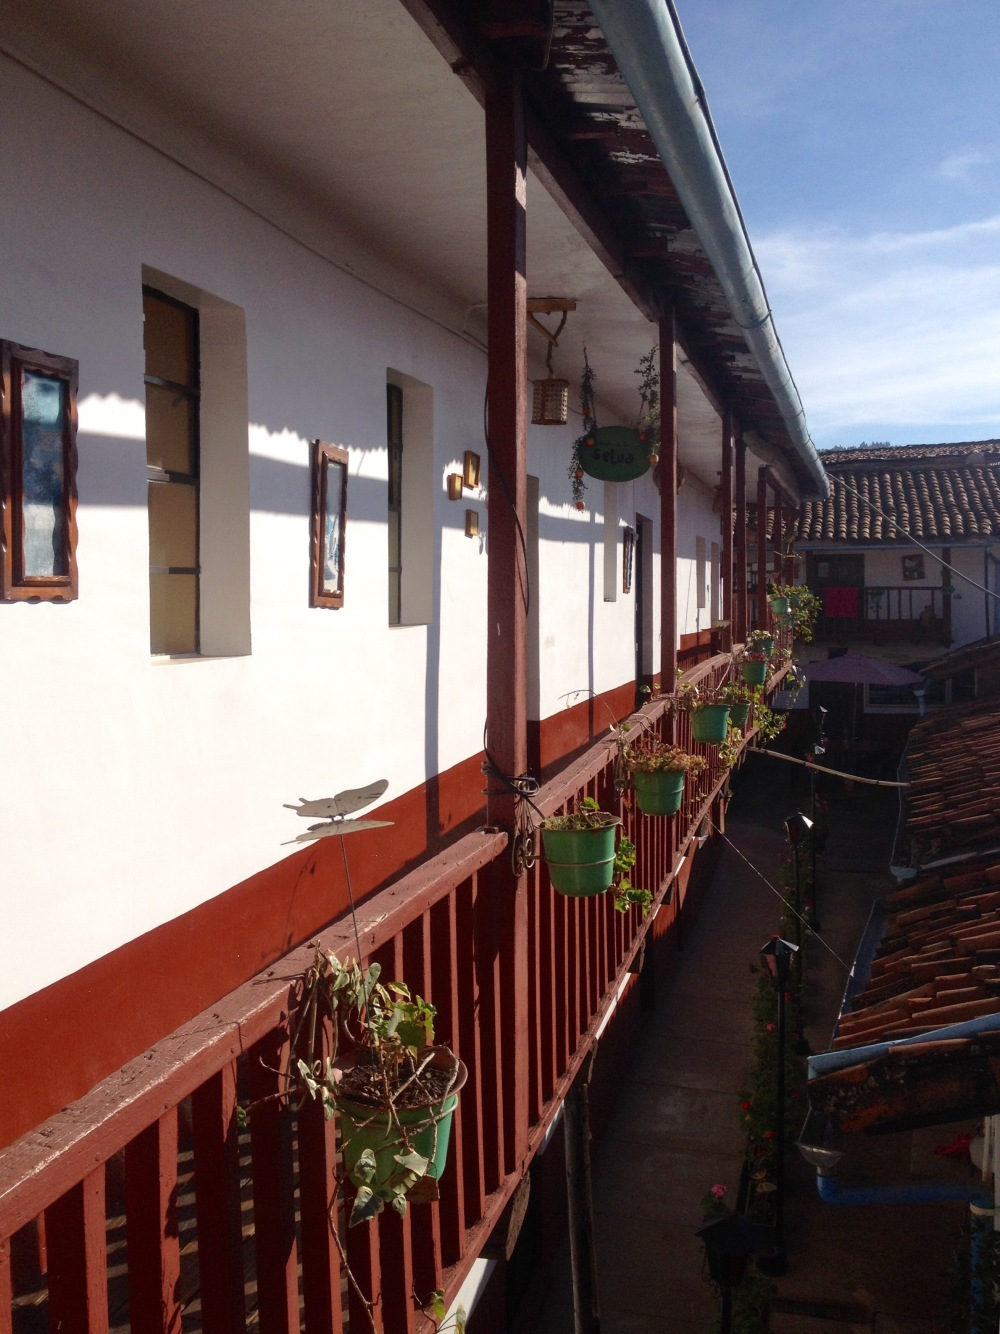 Atawkama Hostel in Cusco in Peru